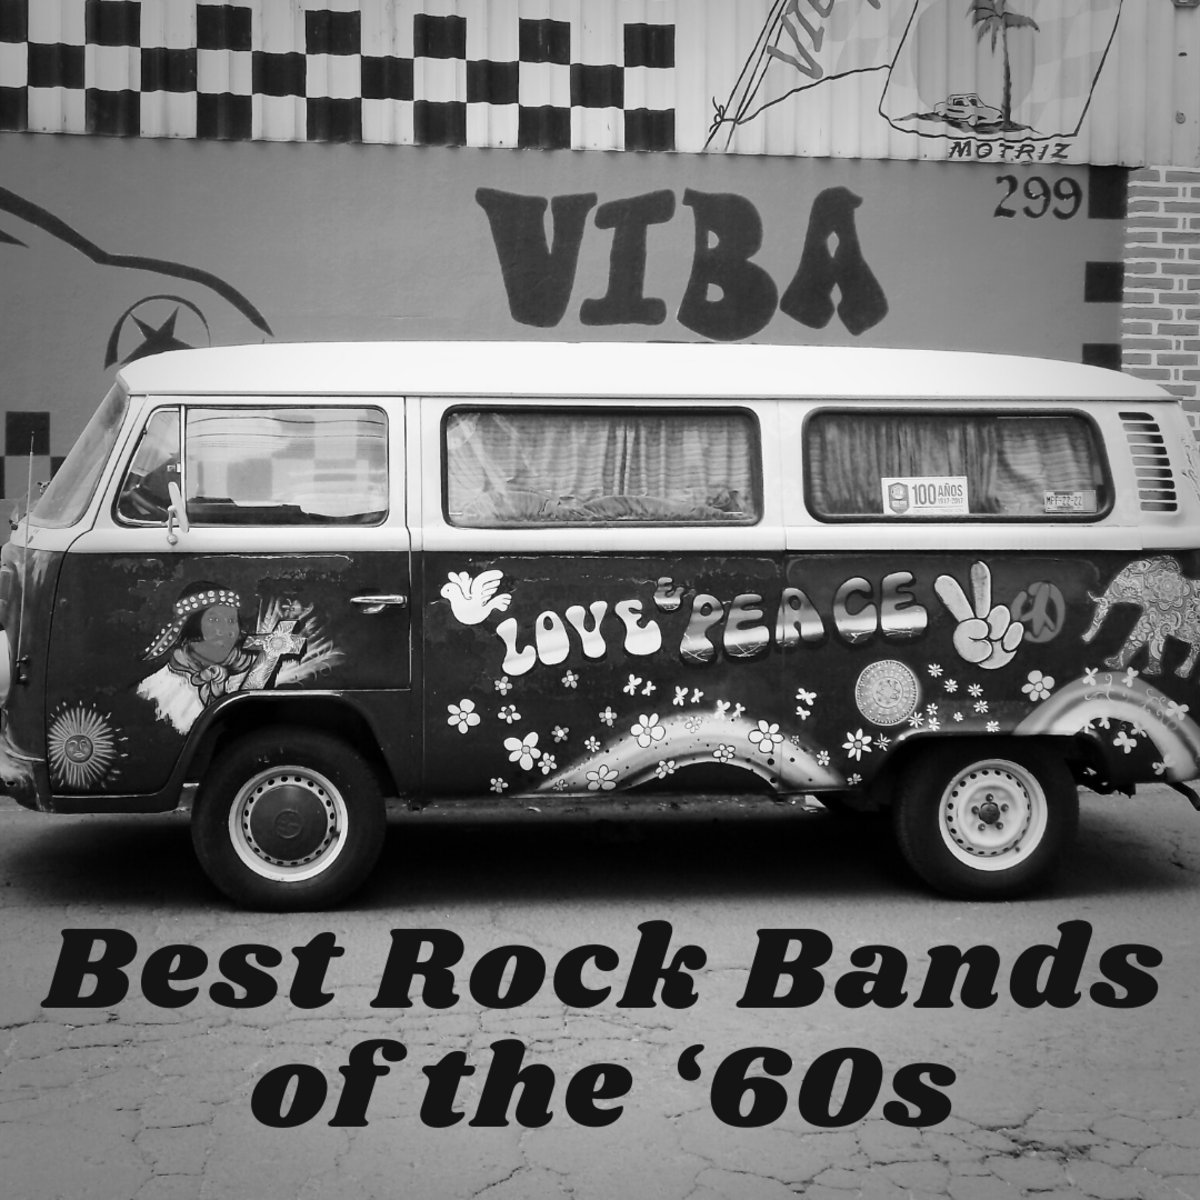 100 Best Rock Bands of the '60s